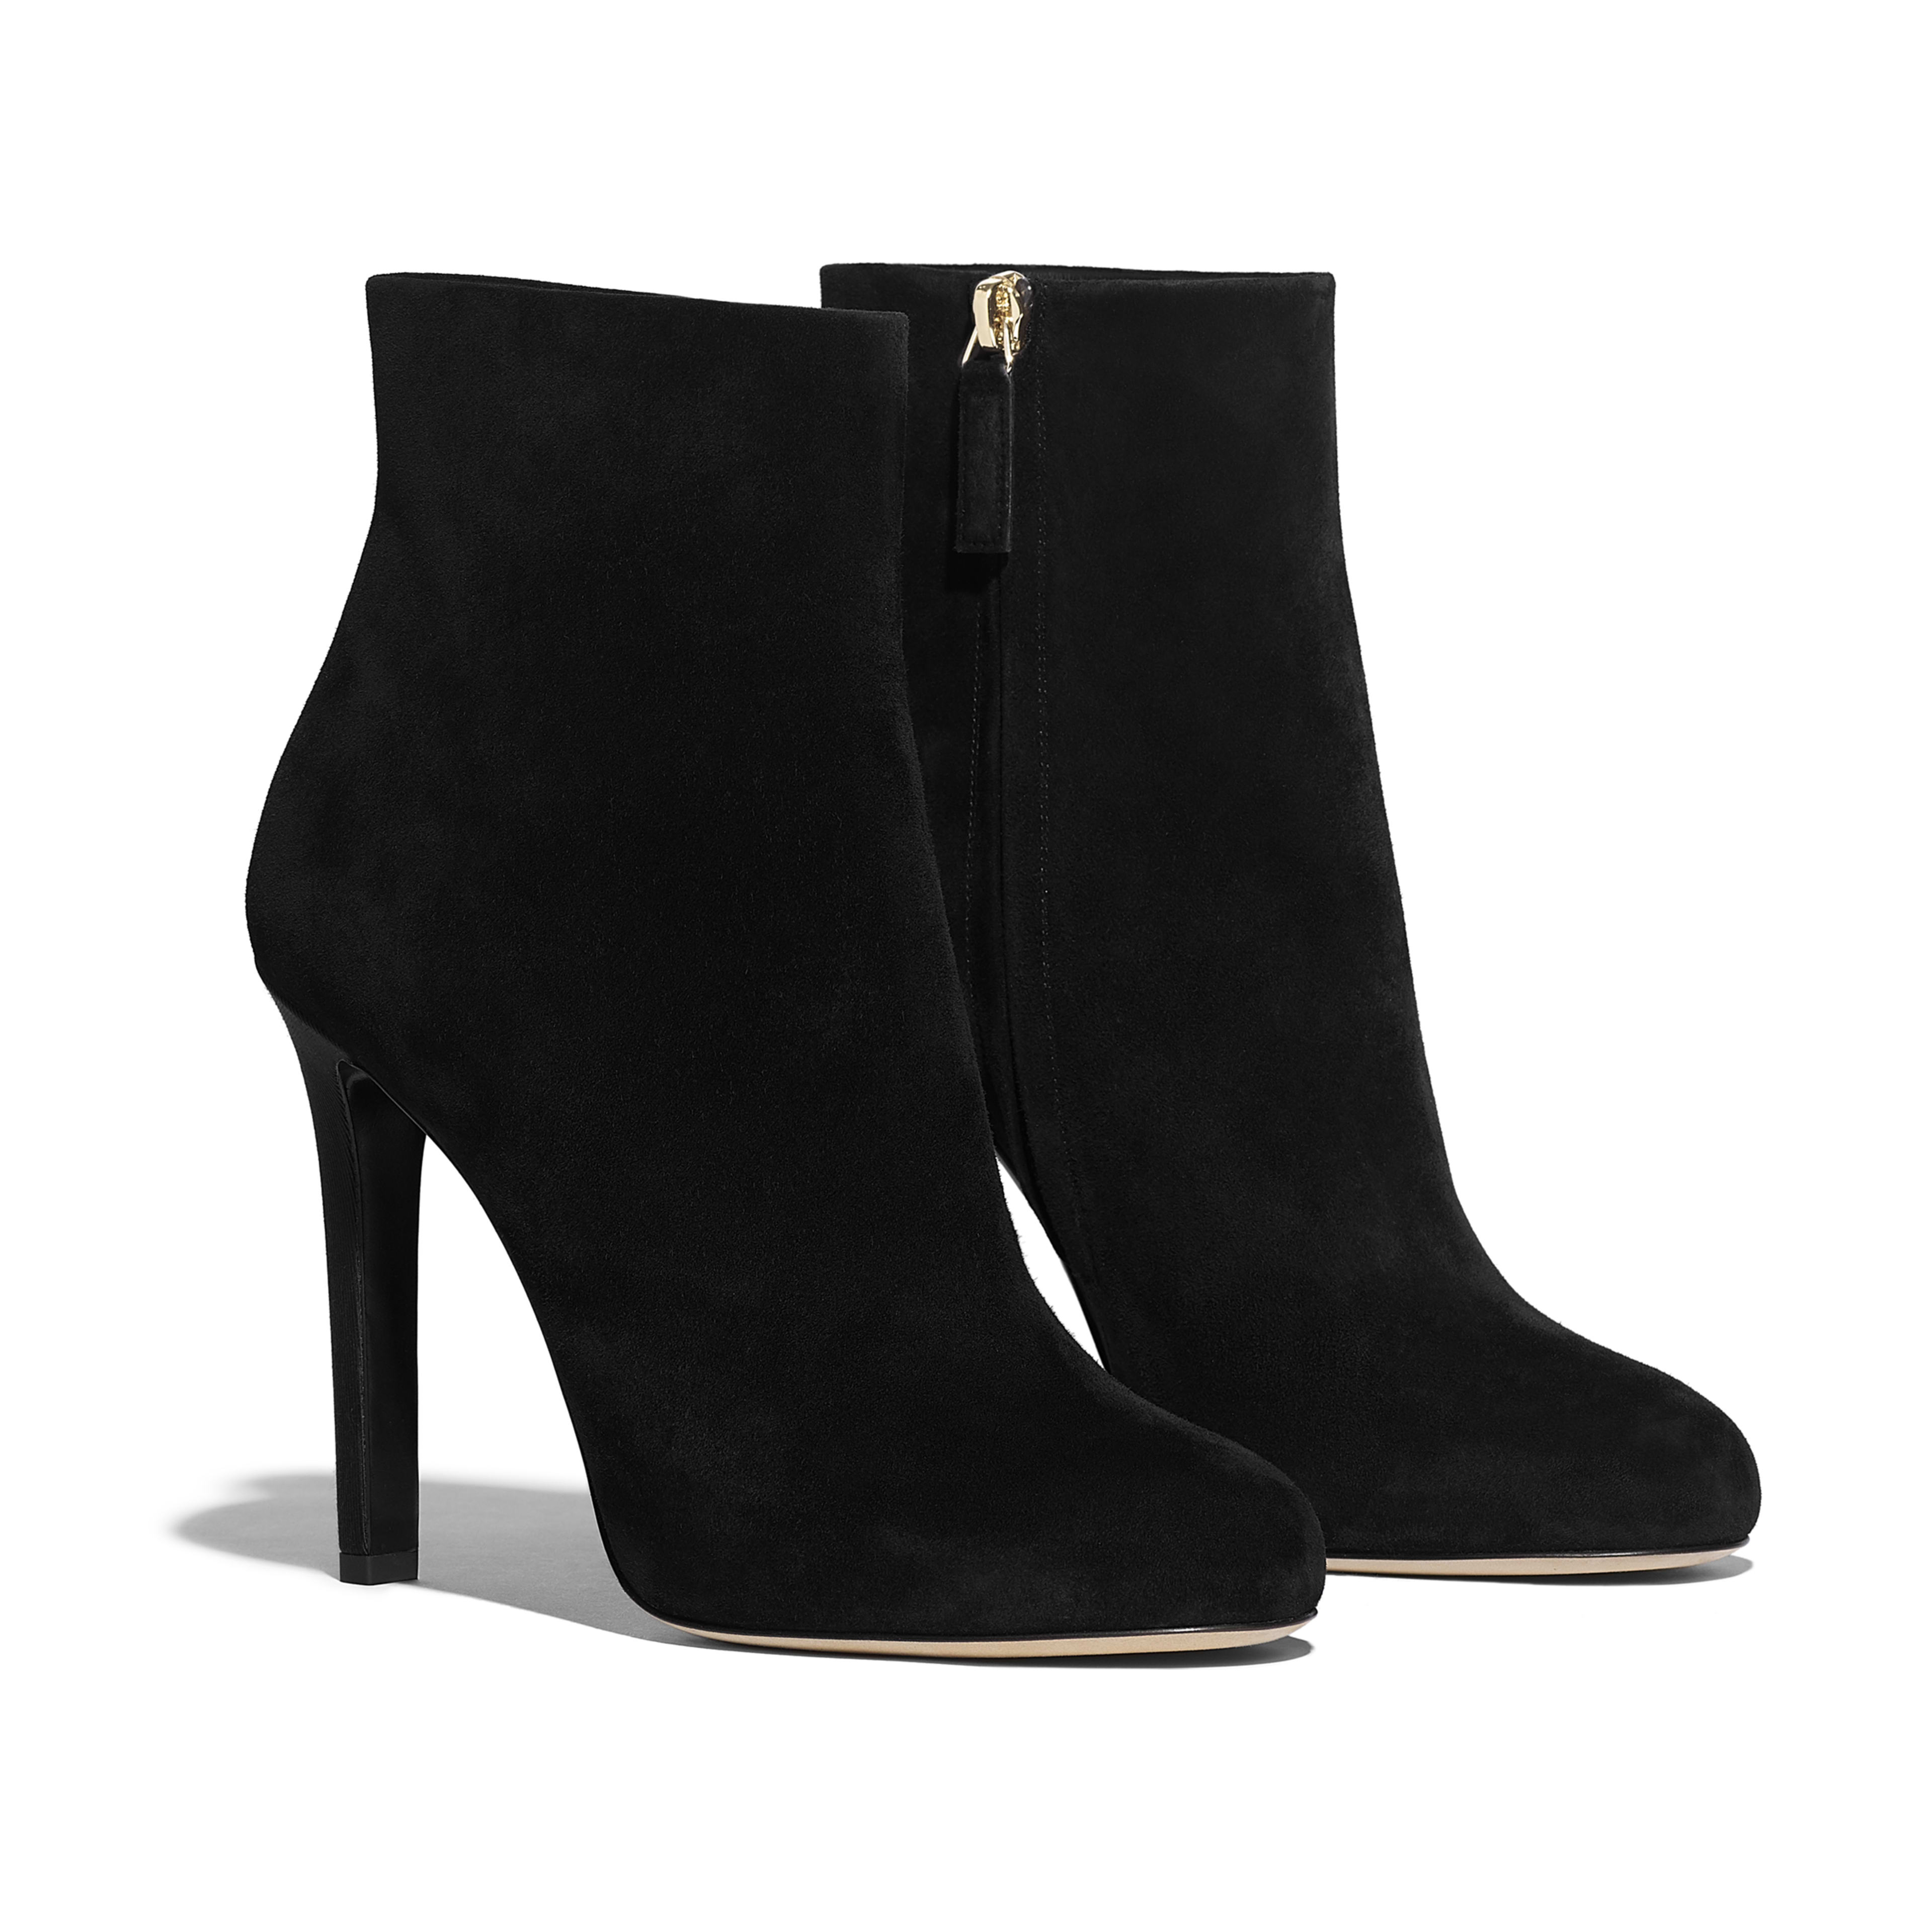 Ankle Boots - Black - Suede Calfskin - Alternative view - see full sized version